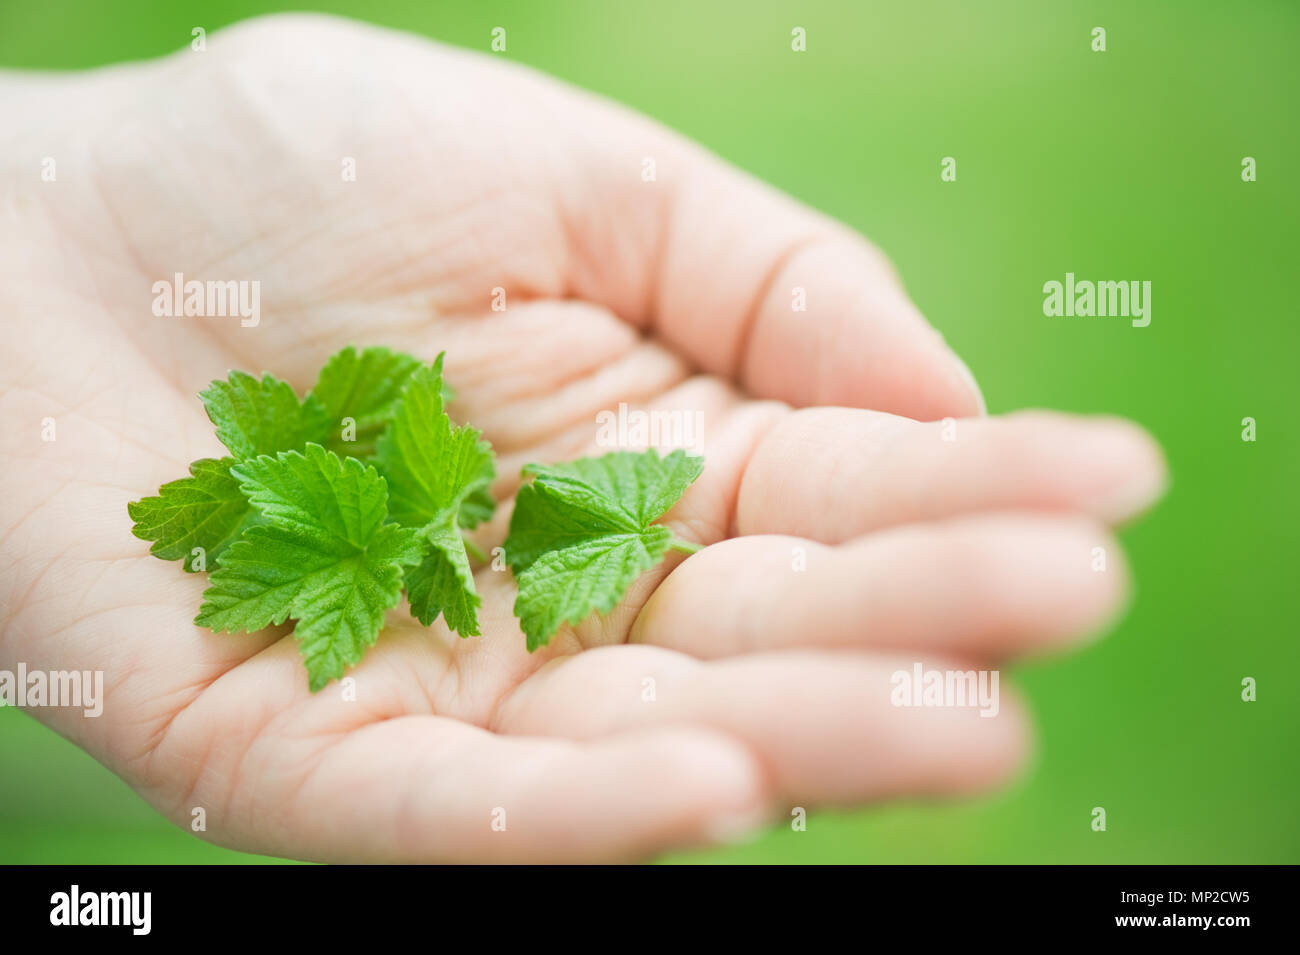 Fresh green black currant leaves on hand. Stock Photo